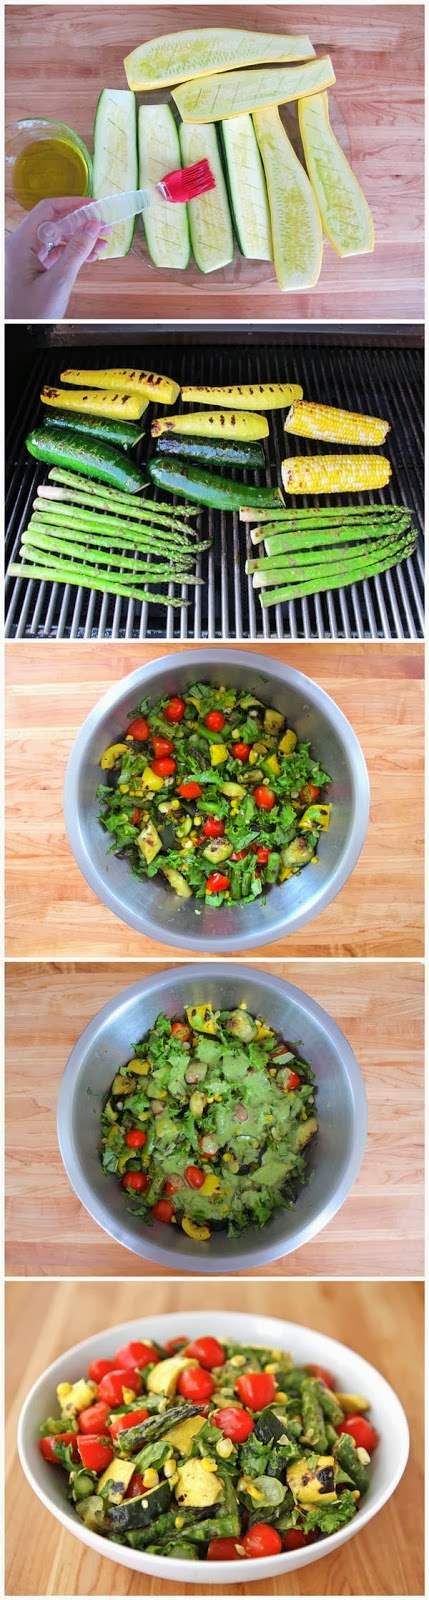 Grilled-Vegetable-Salad-Recipe